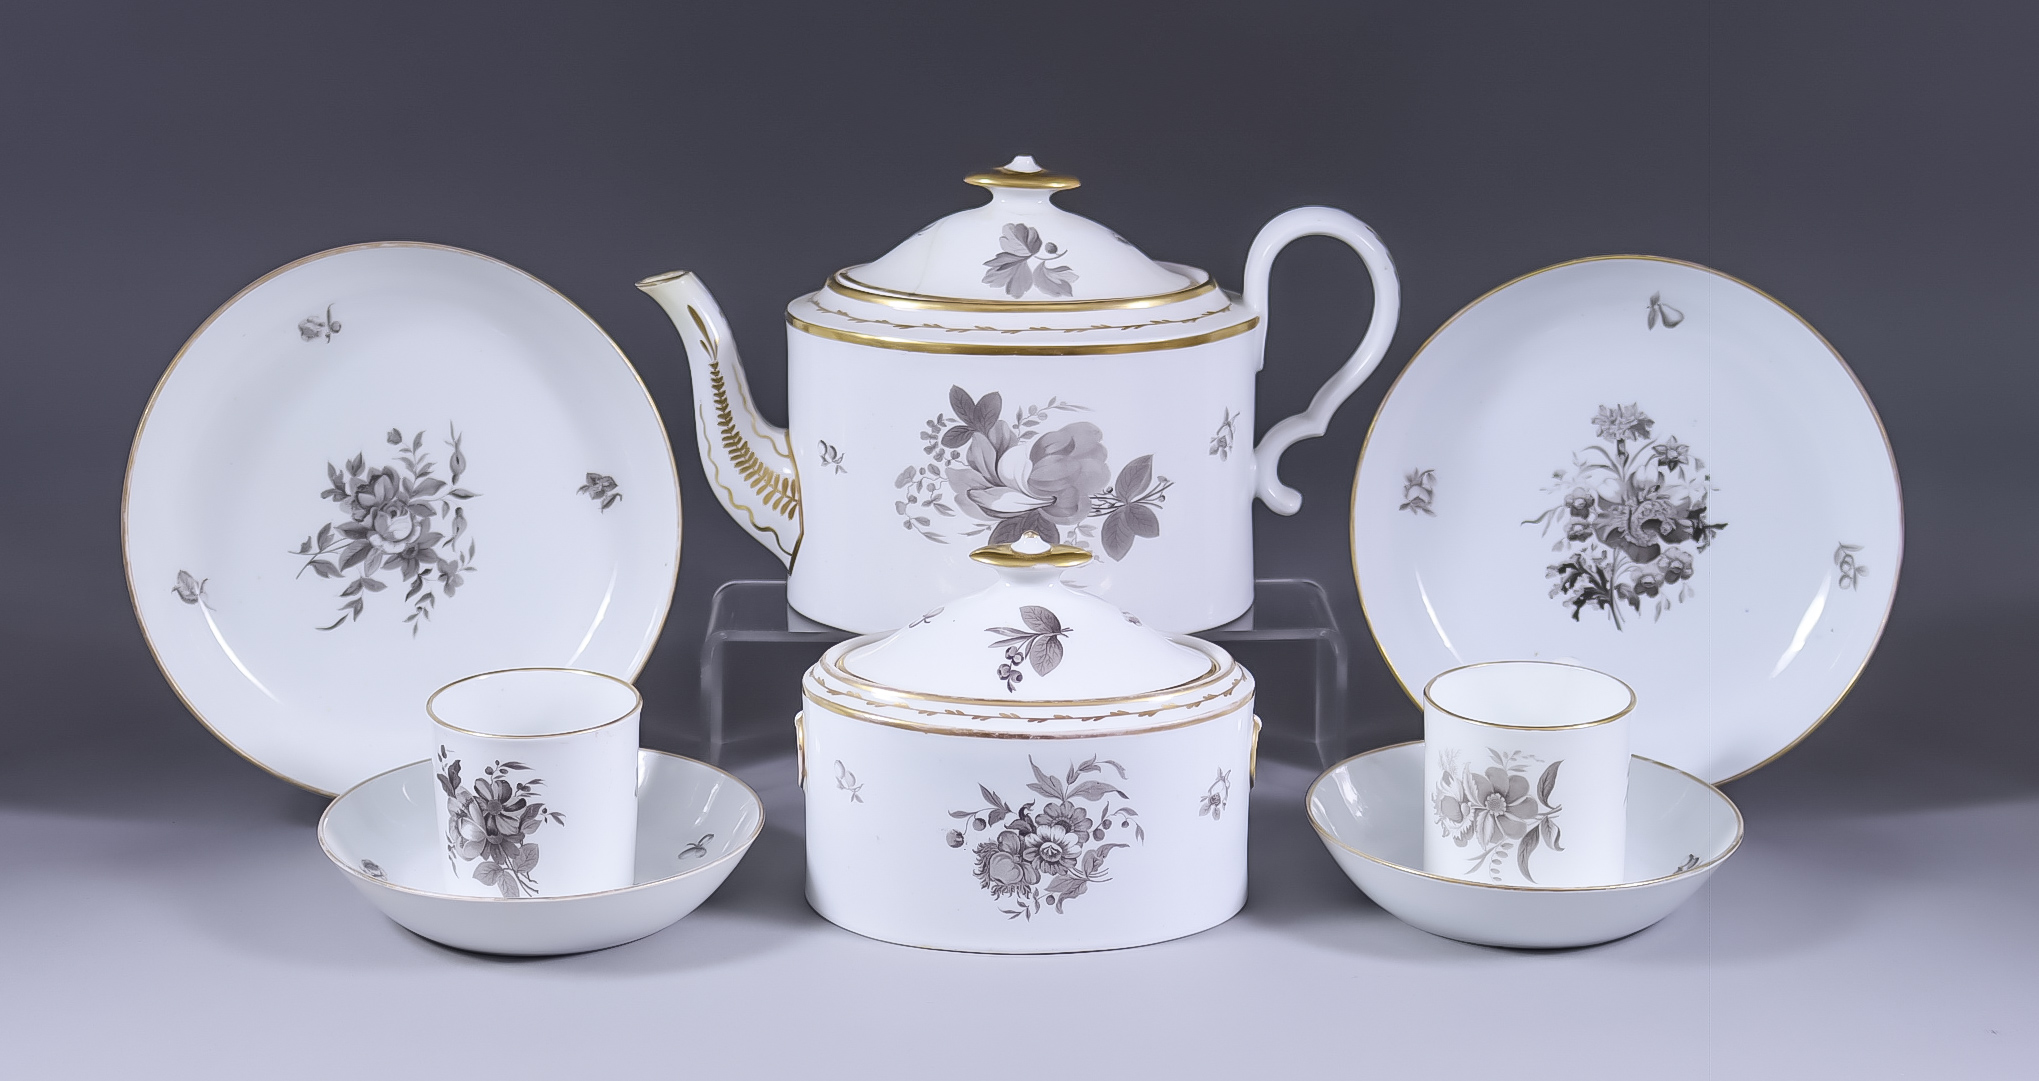 A Collection of English Bat Printed Bone China, Early 19th Century, including Copeland & Garrett